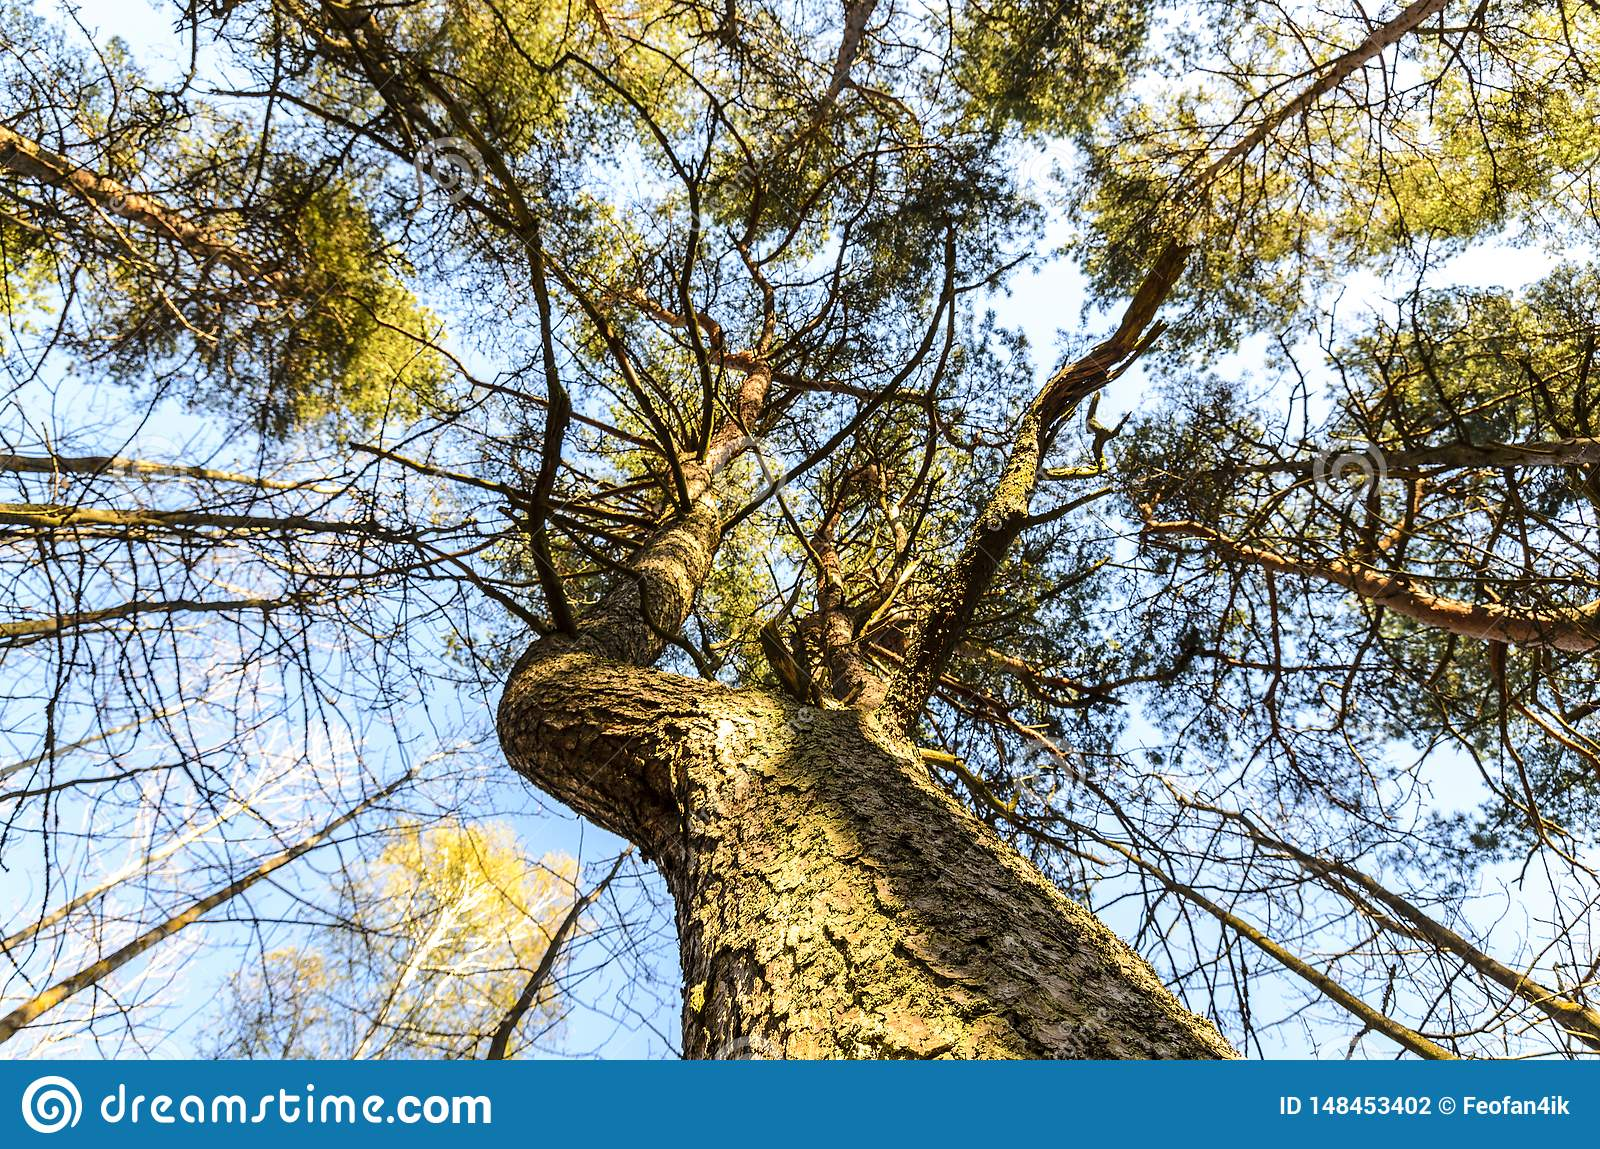 Texture of a perennial tree, majestic pine and its beautiful crown, bottom view